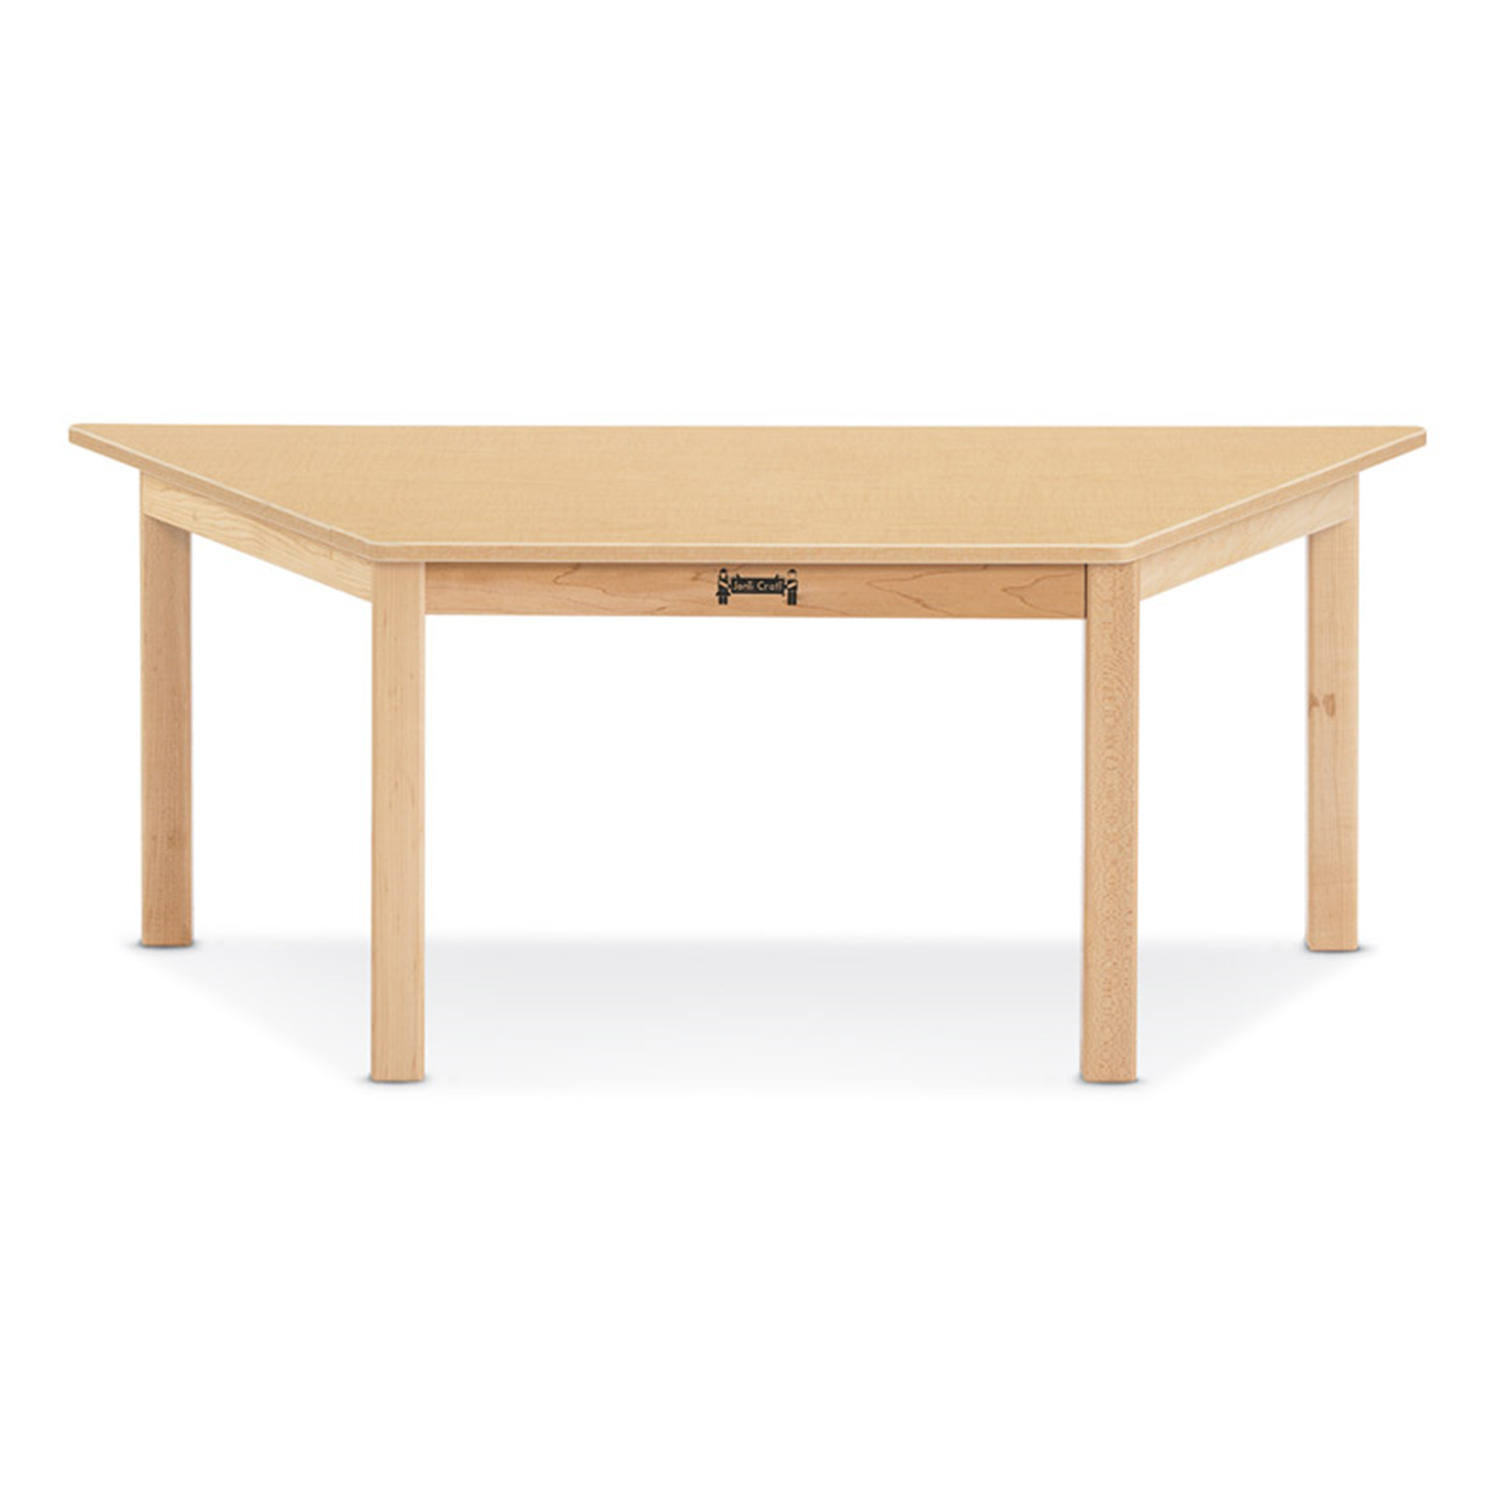 Multi-purpose Trapezoid Table - Maple - [53310JC]